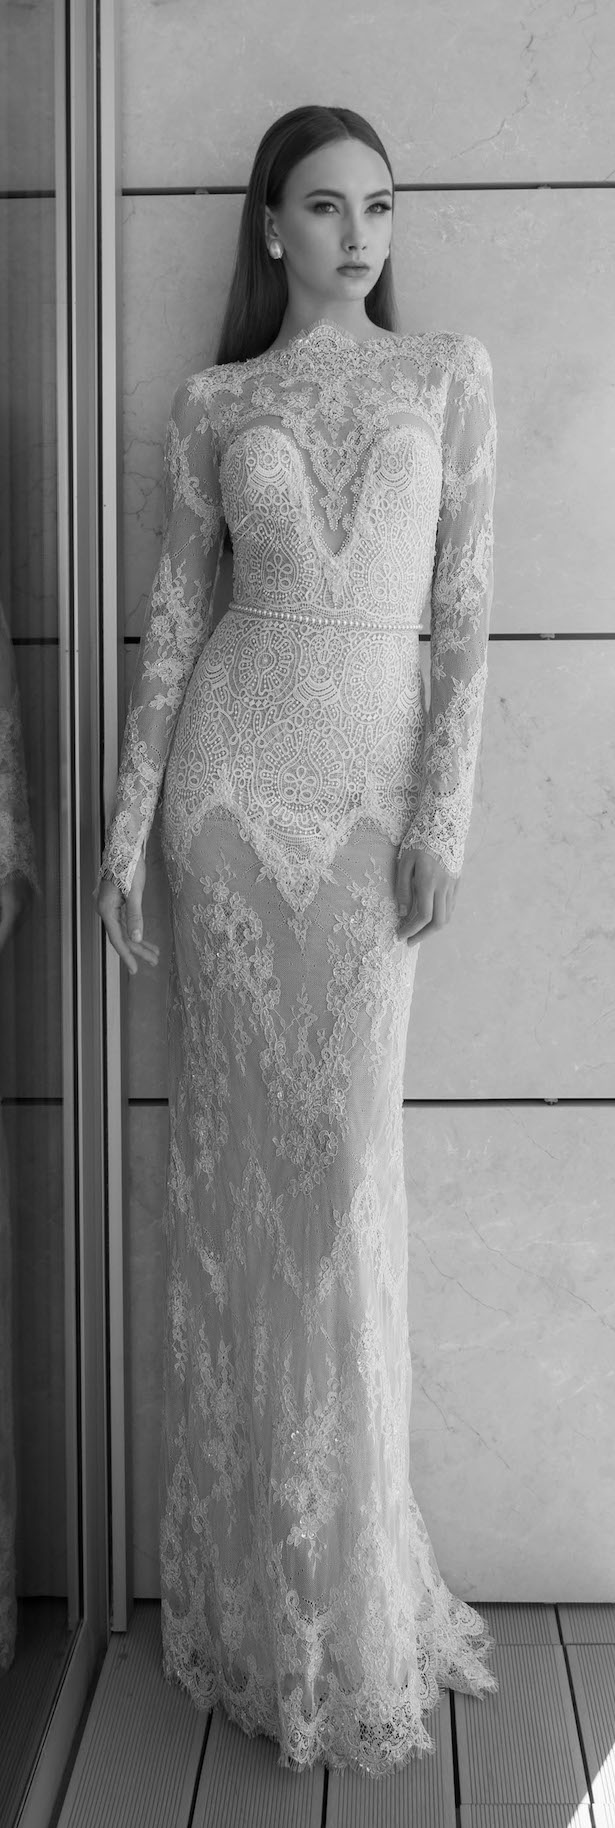 Dany Mizrachi 2016 Wedding Dress